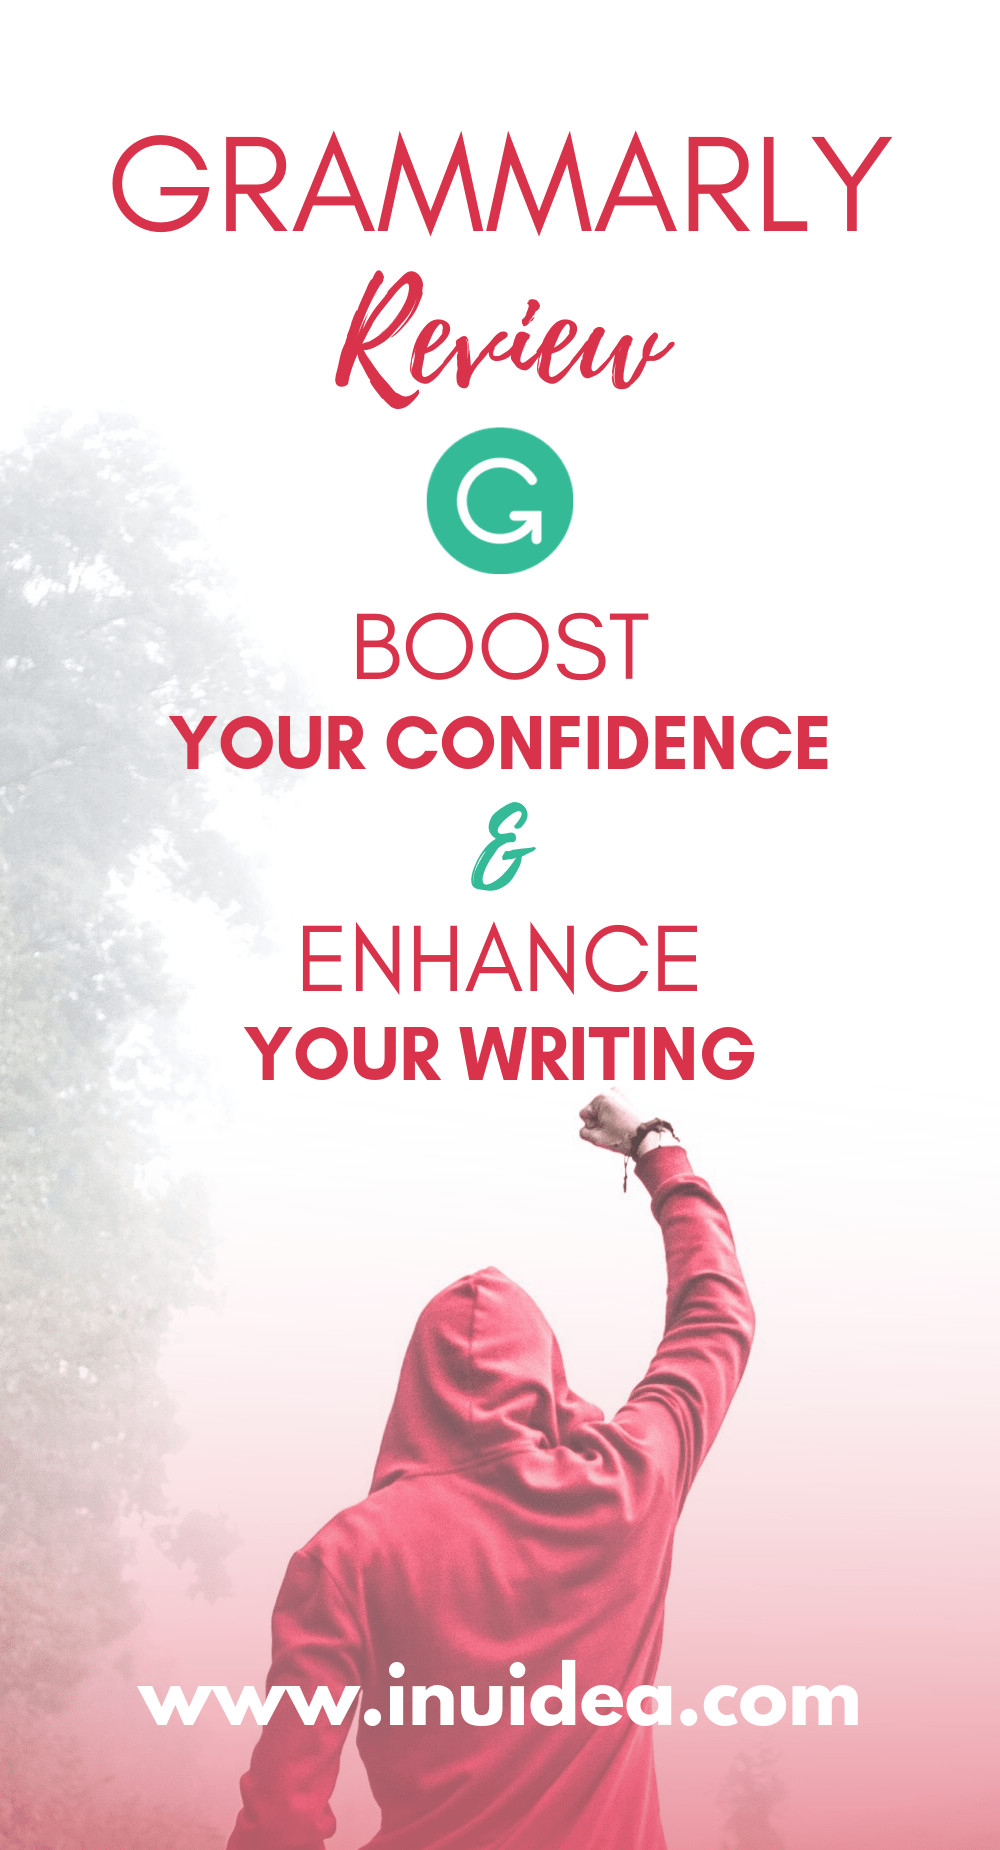 Grammarly Proofreading Software Used Buy